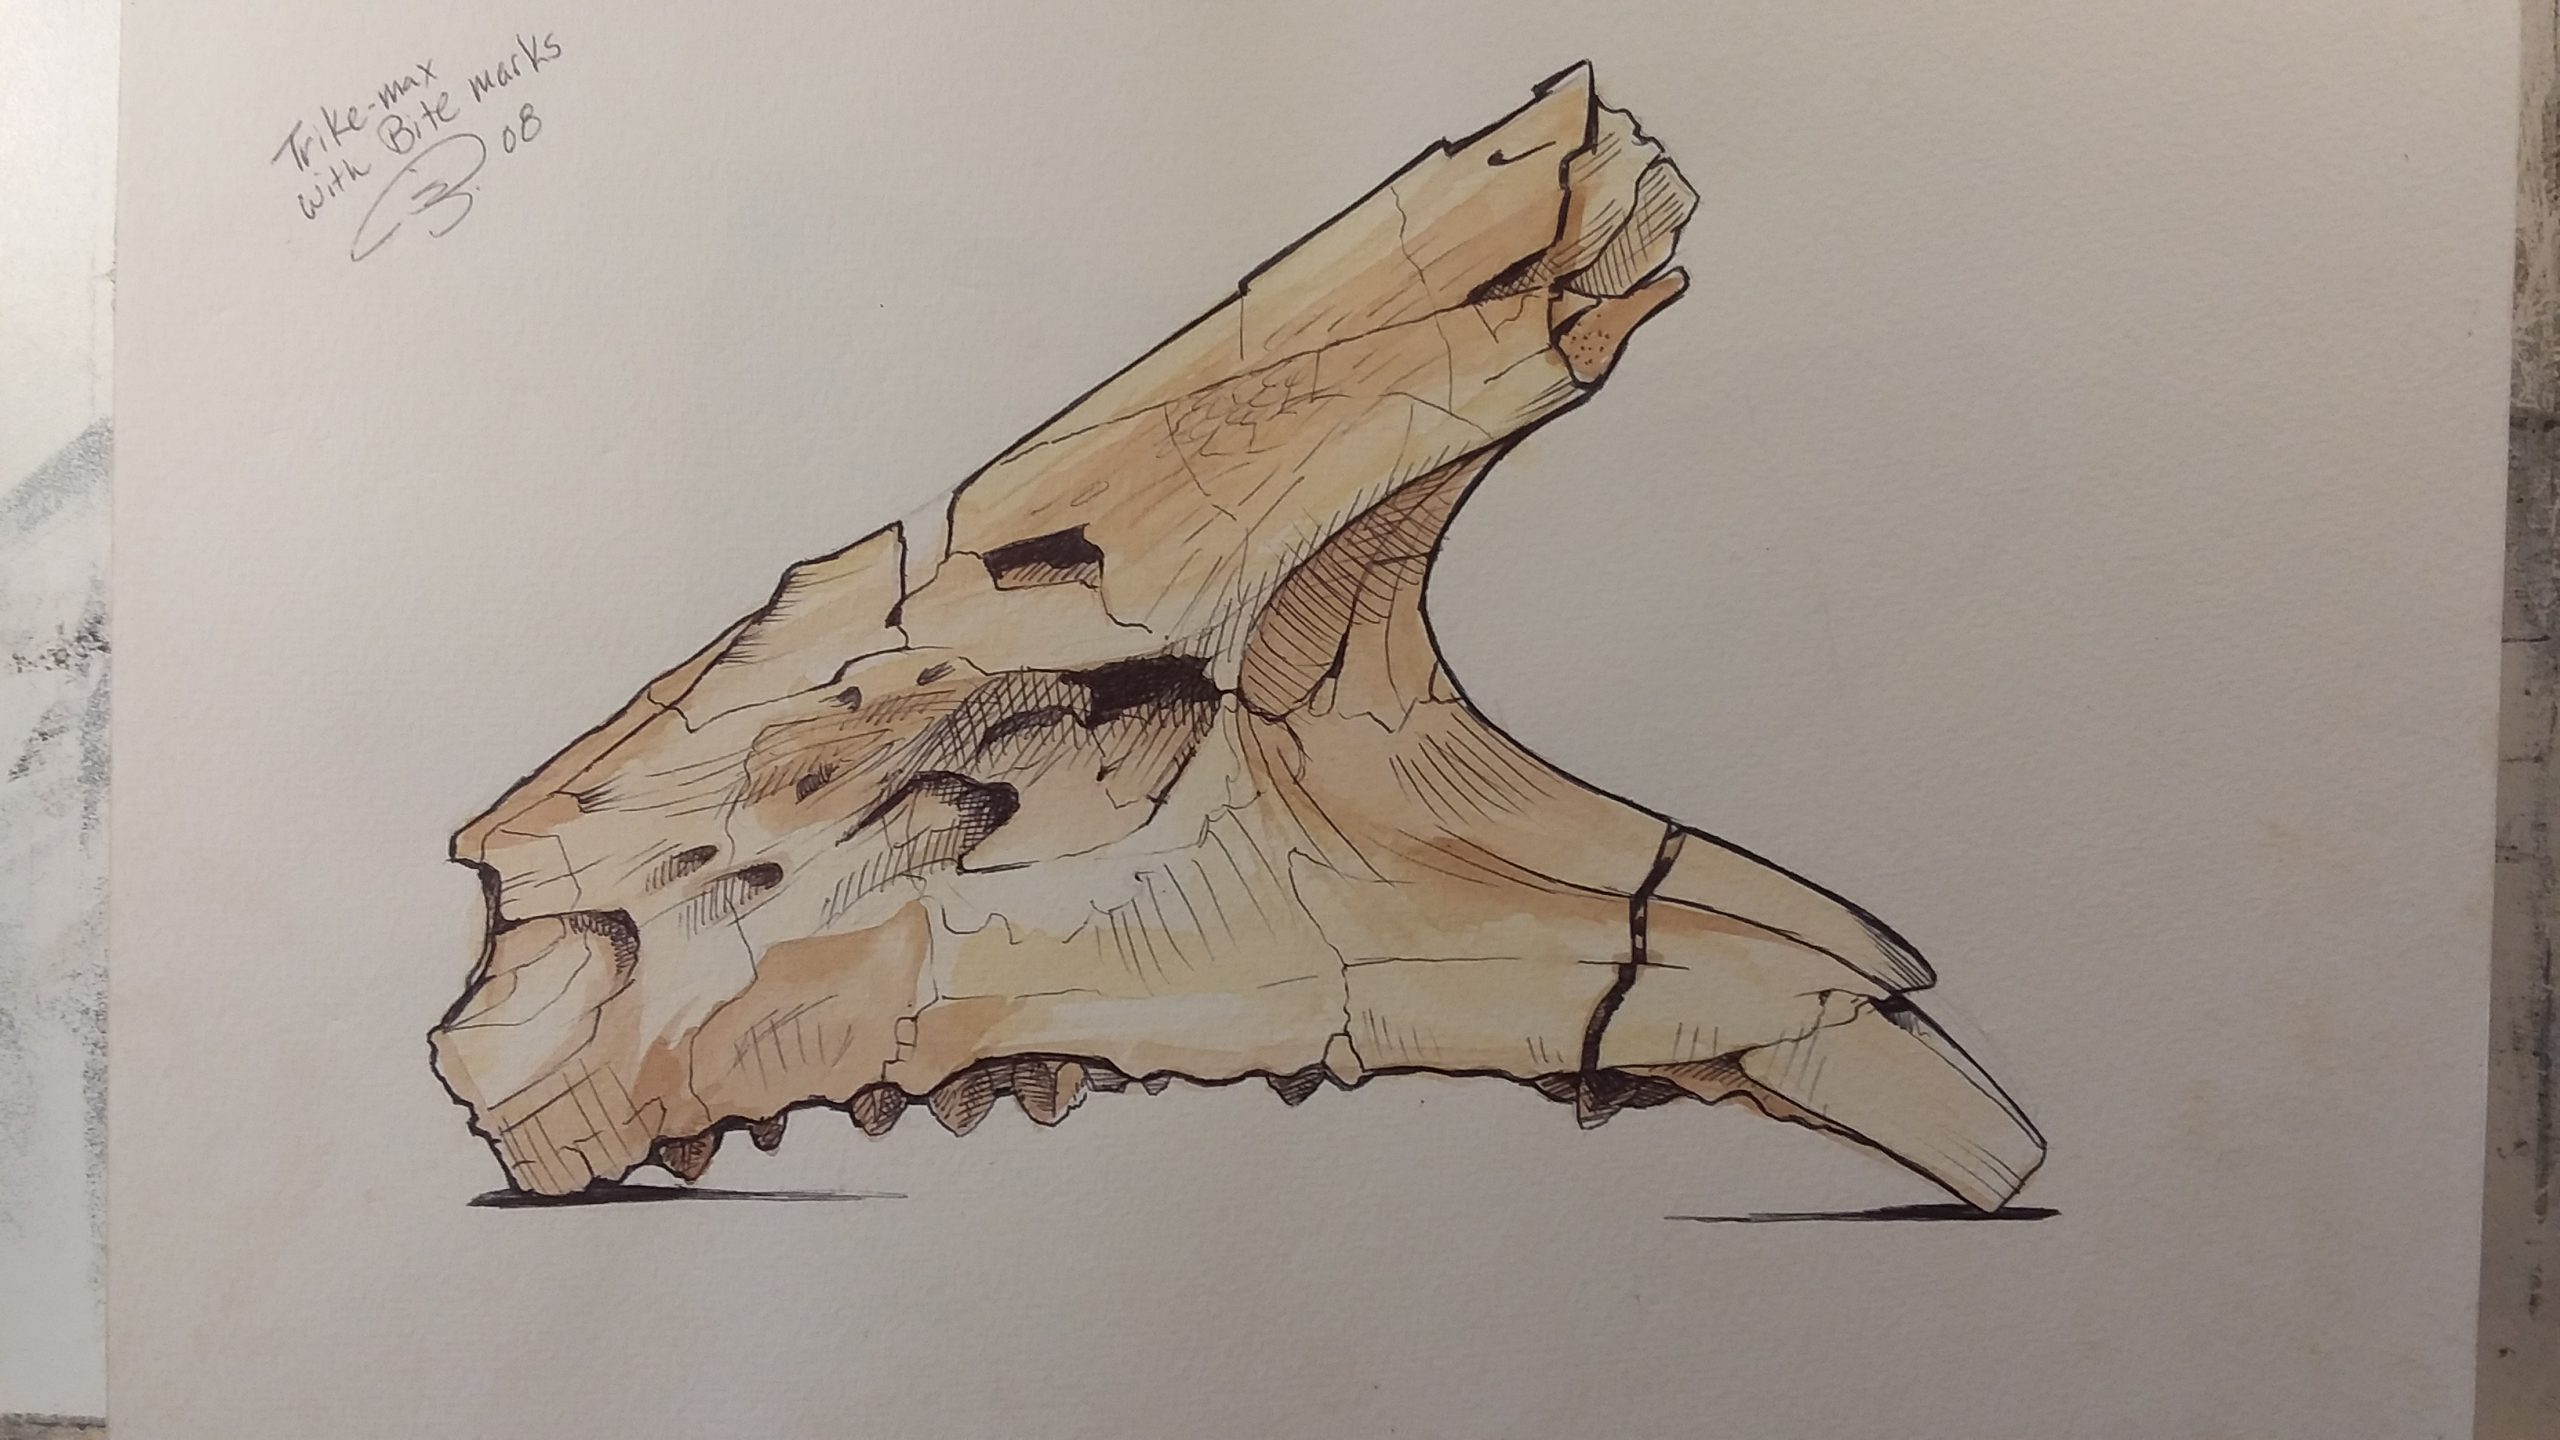 This Triceratops jaw sketch omits other surrounding details in order to focus on the bite marks.